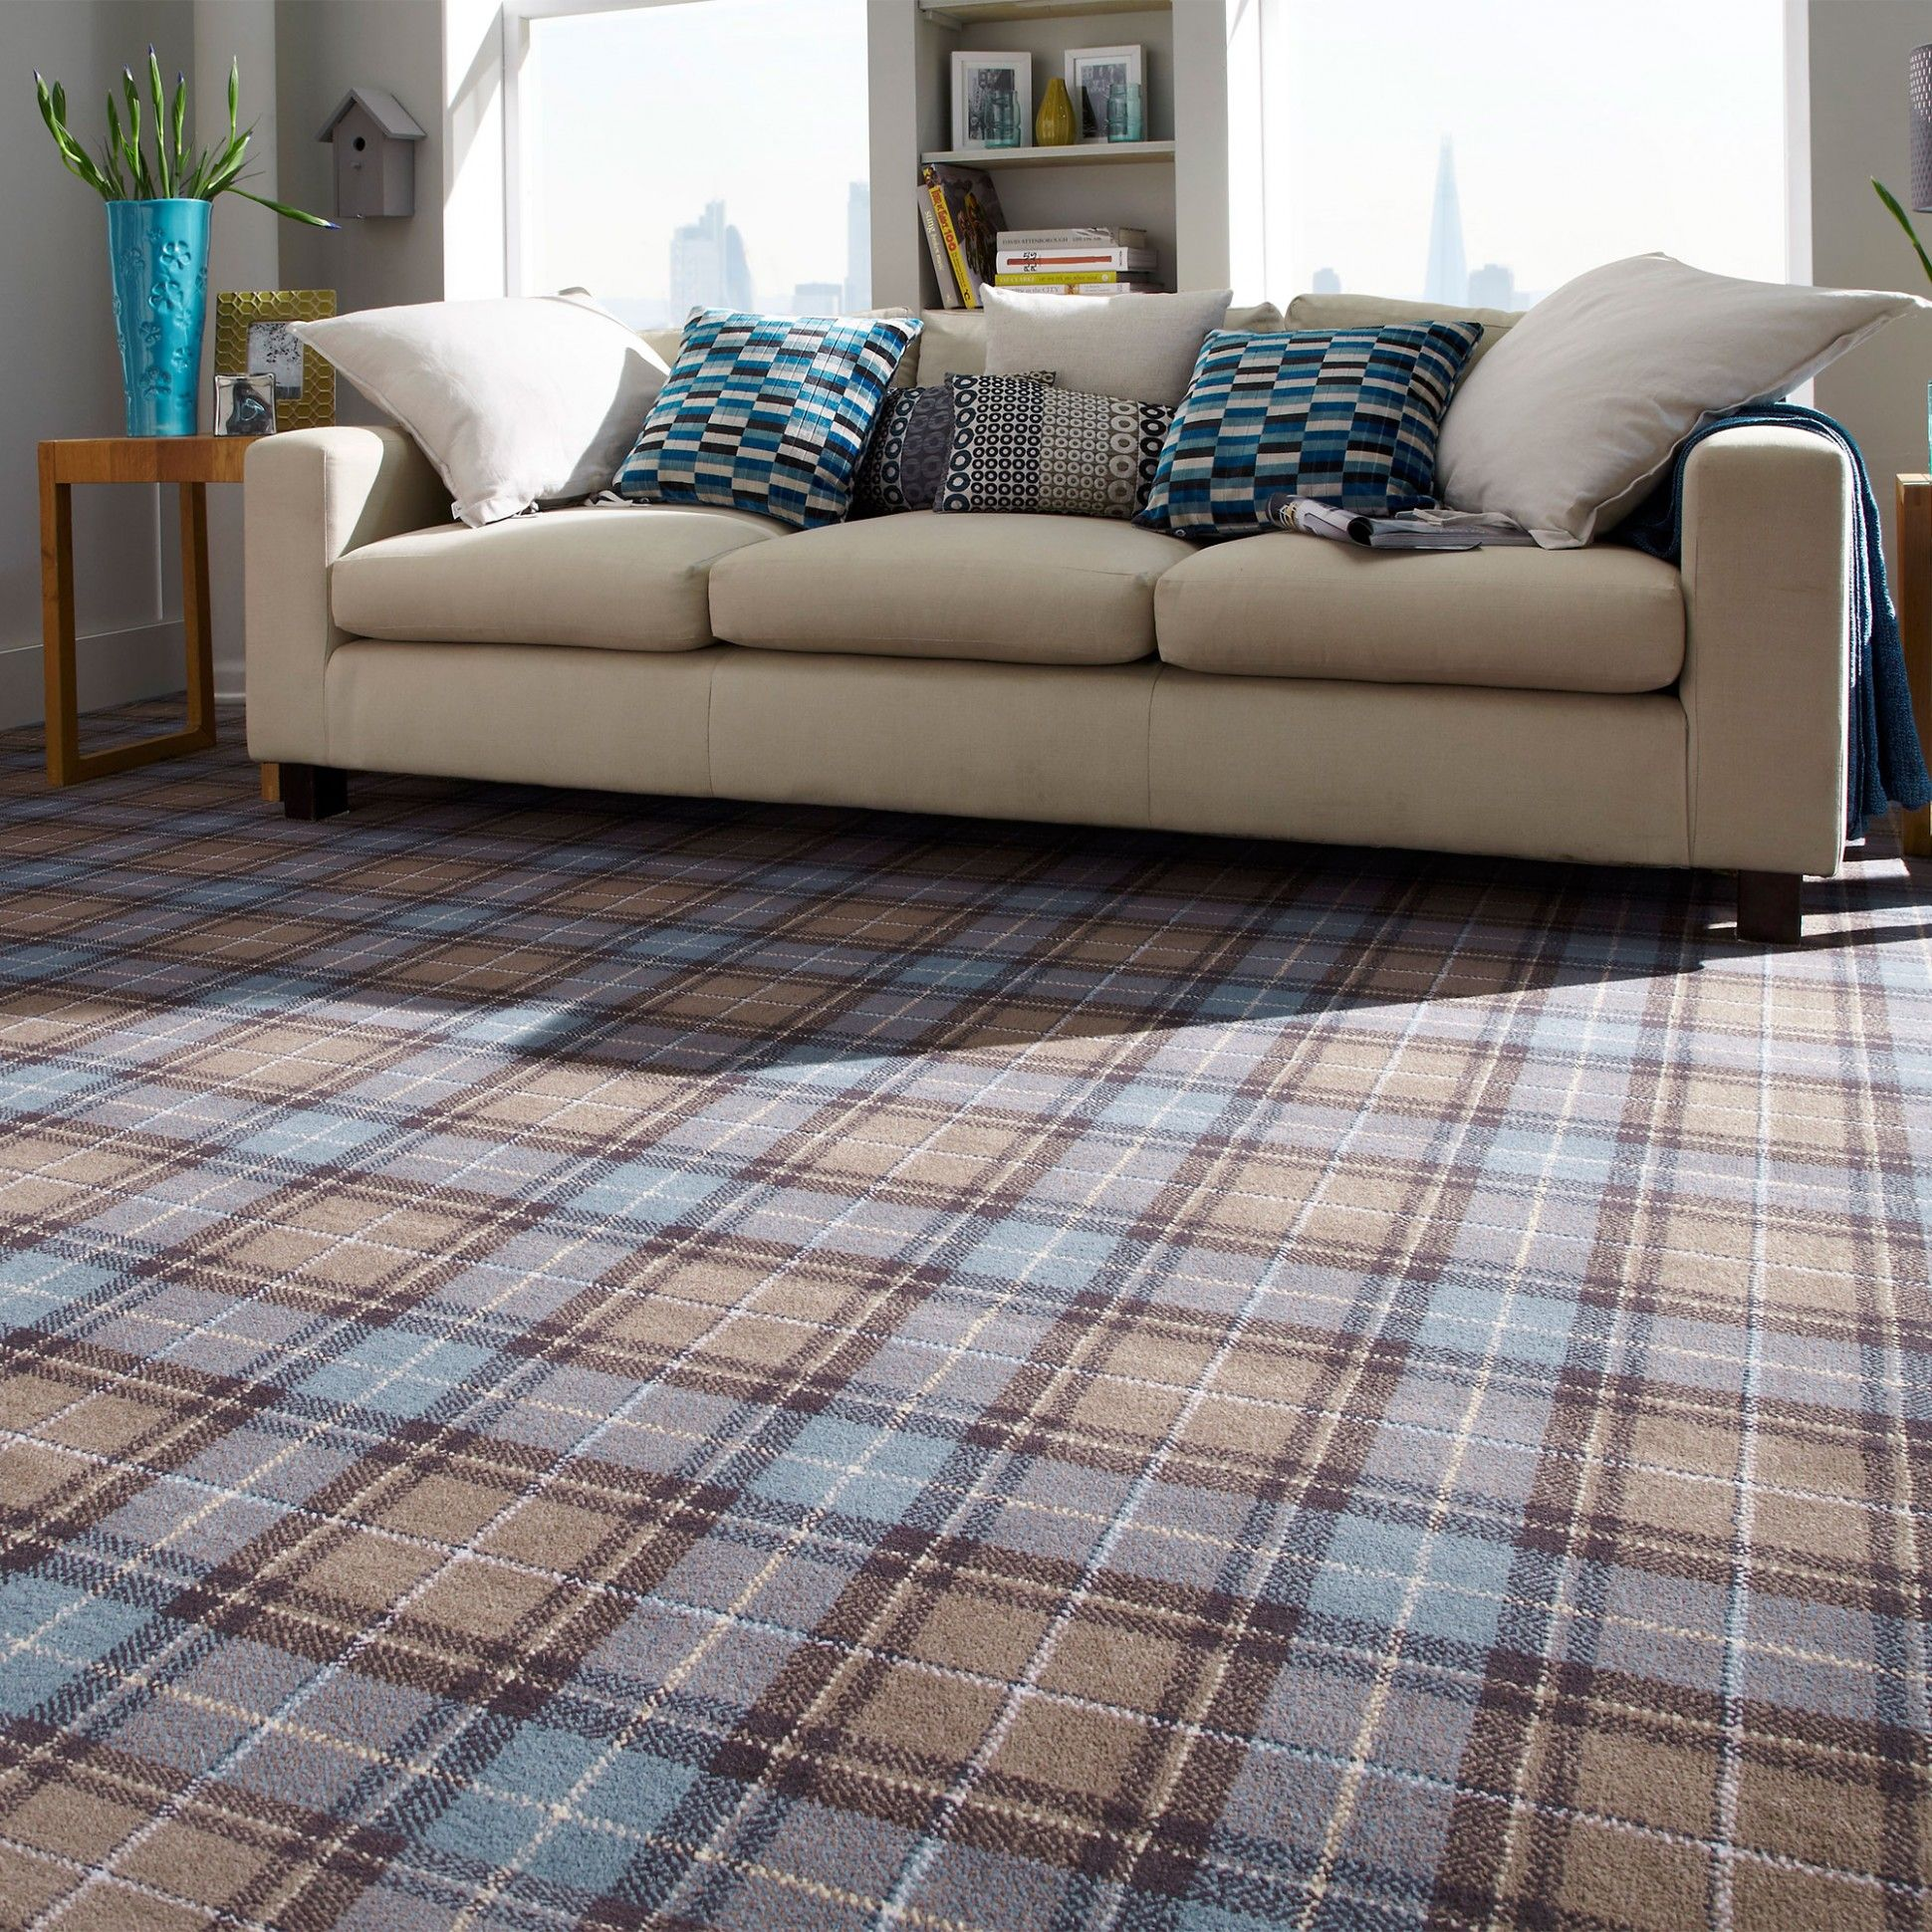 Grey Tartan Carpet Living Living Room Carpet Grey Tartan Carpet Grey Patterned Carpet